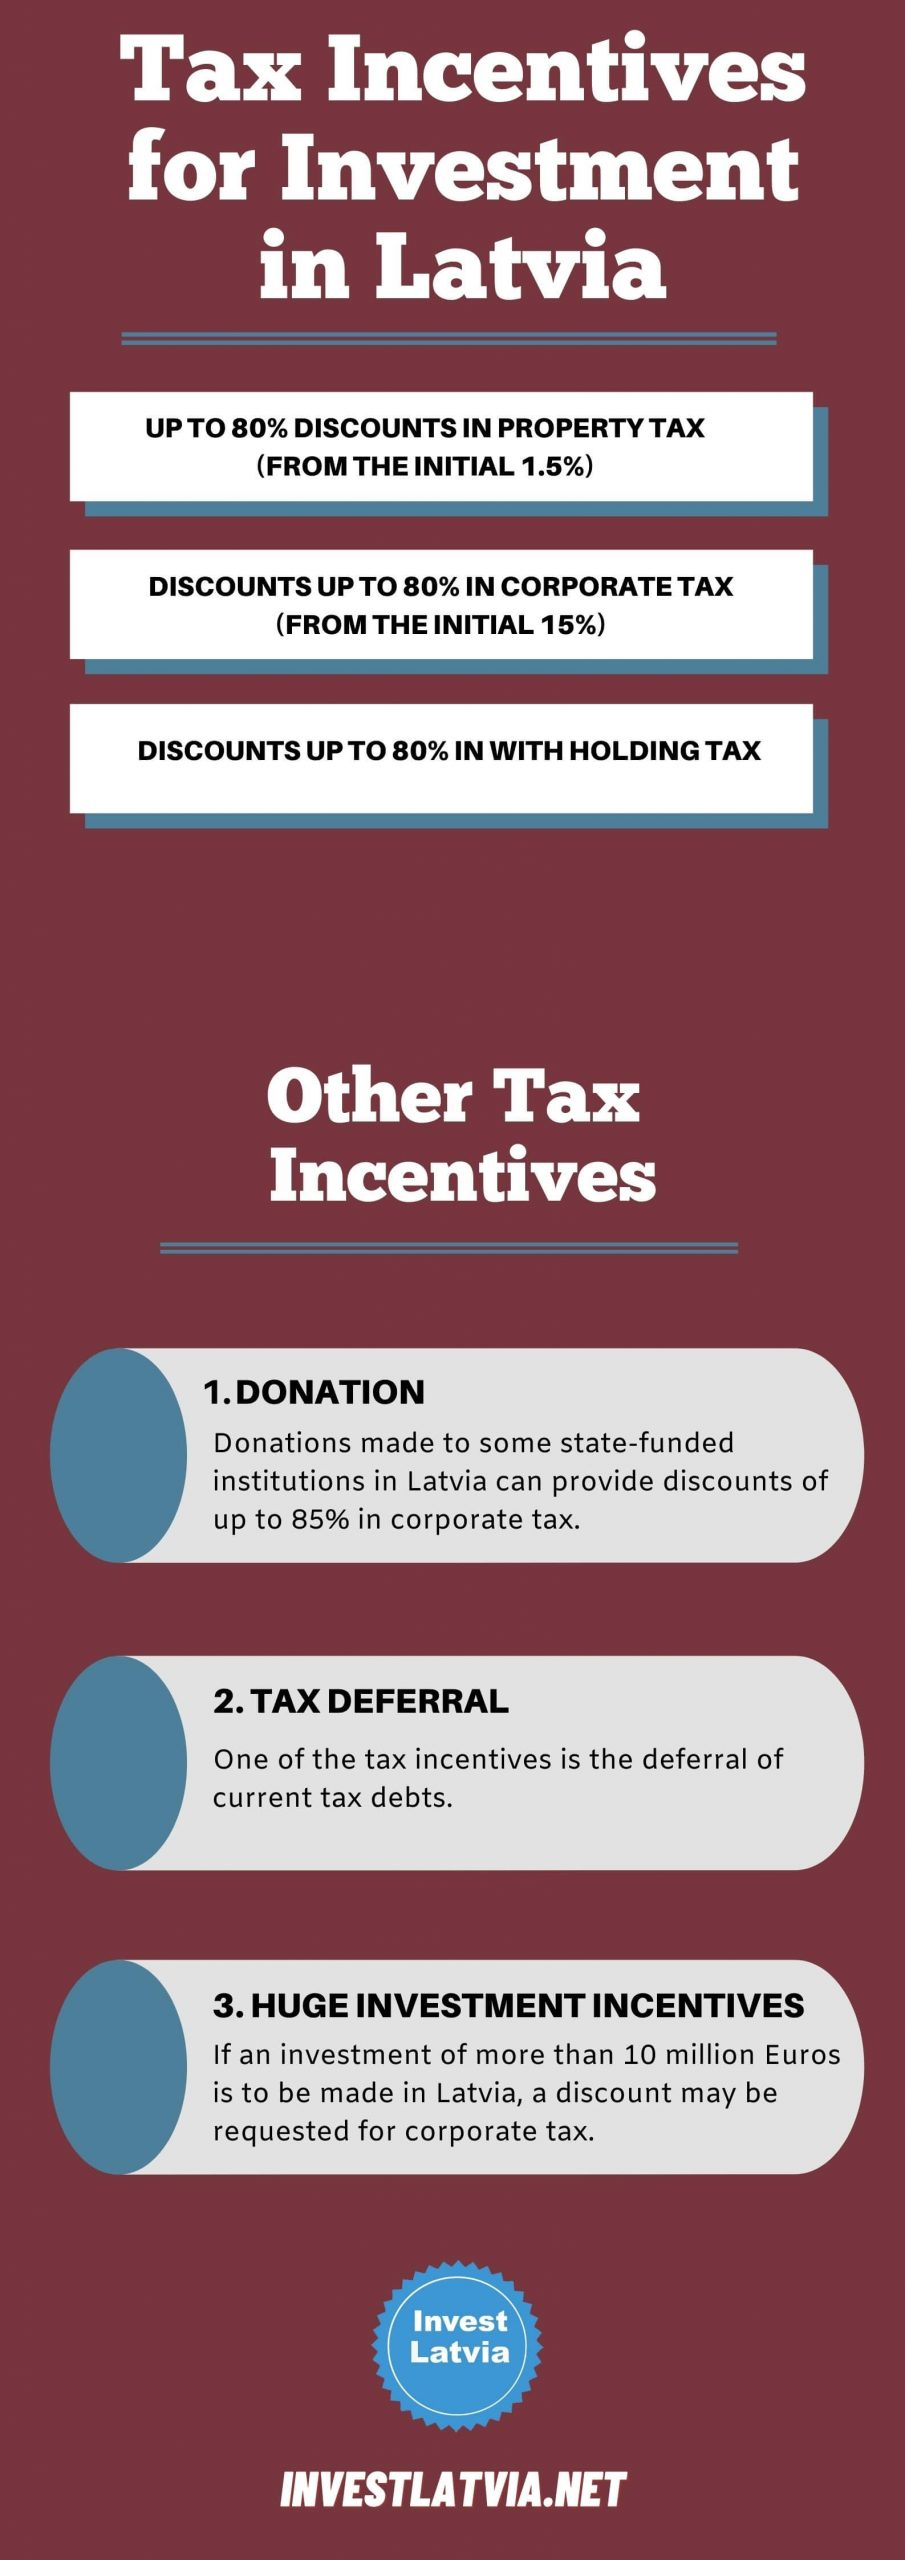 Tax Incentives for Latvia